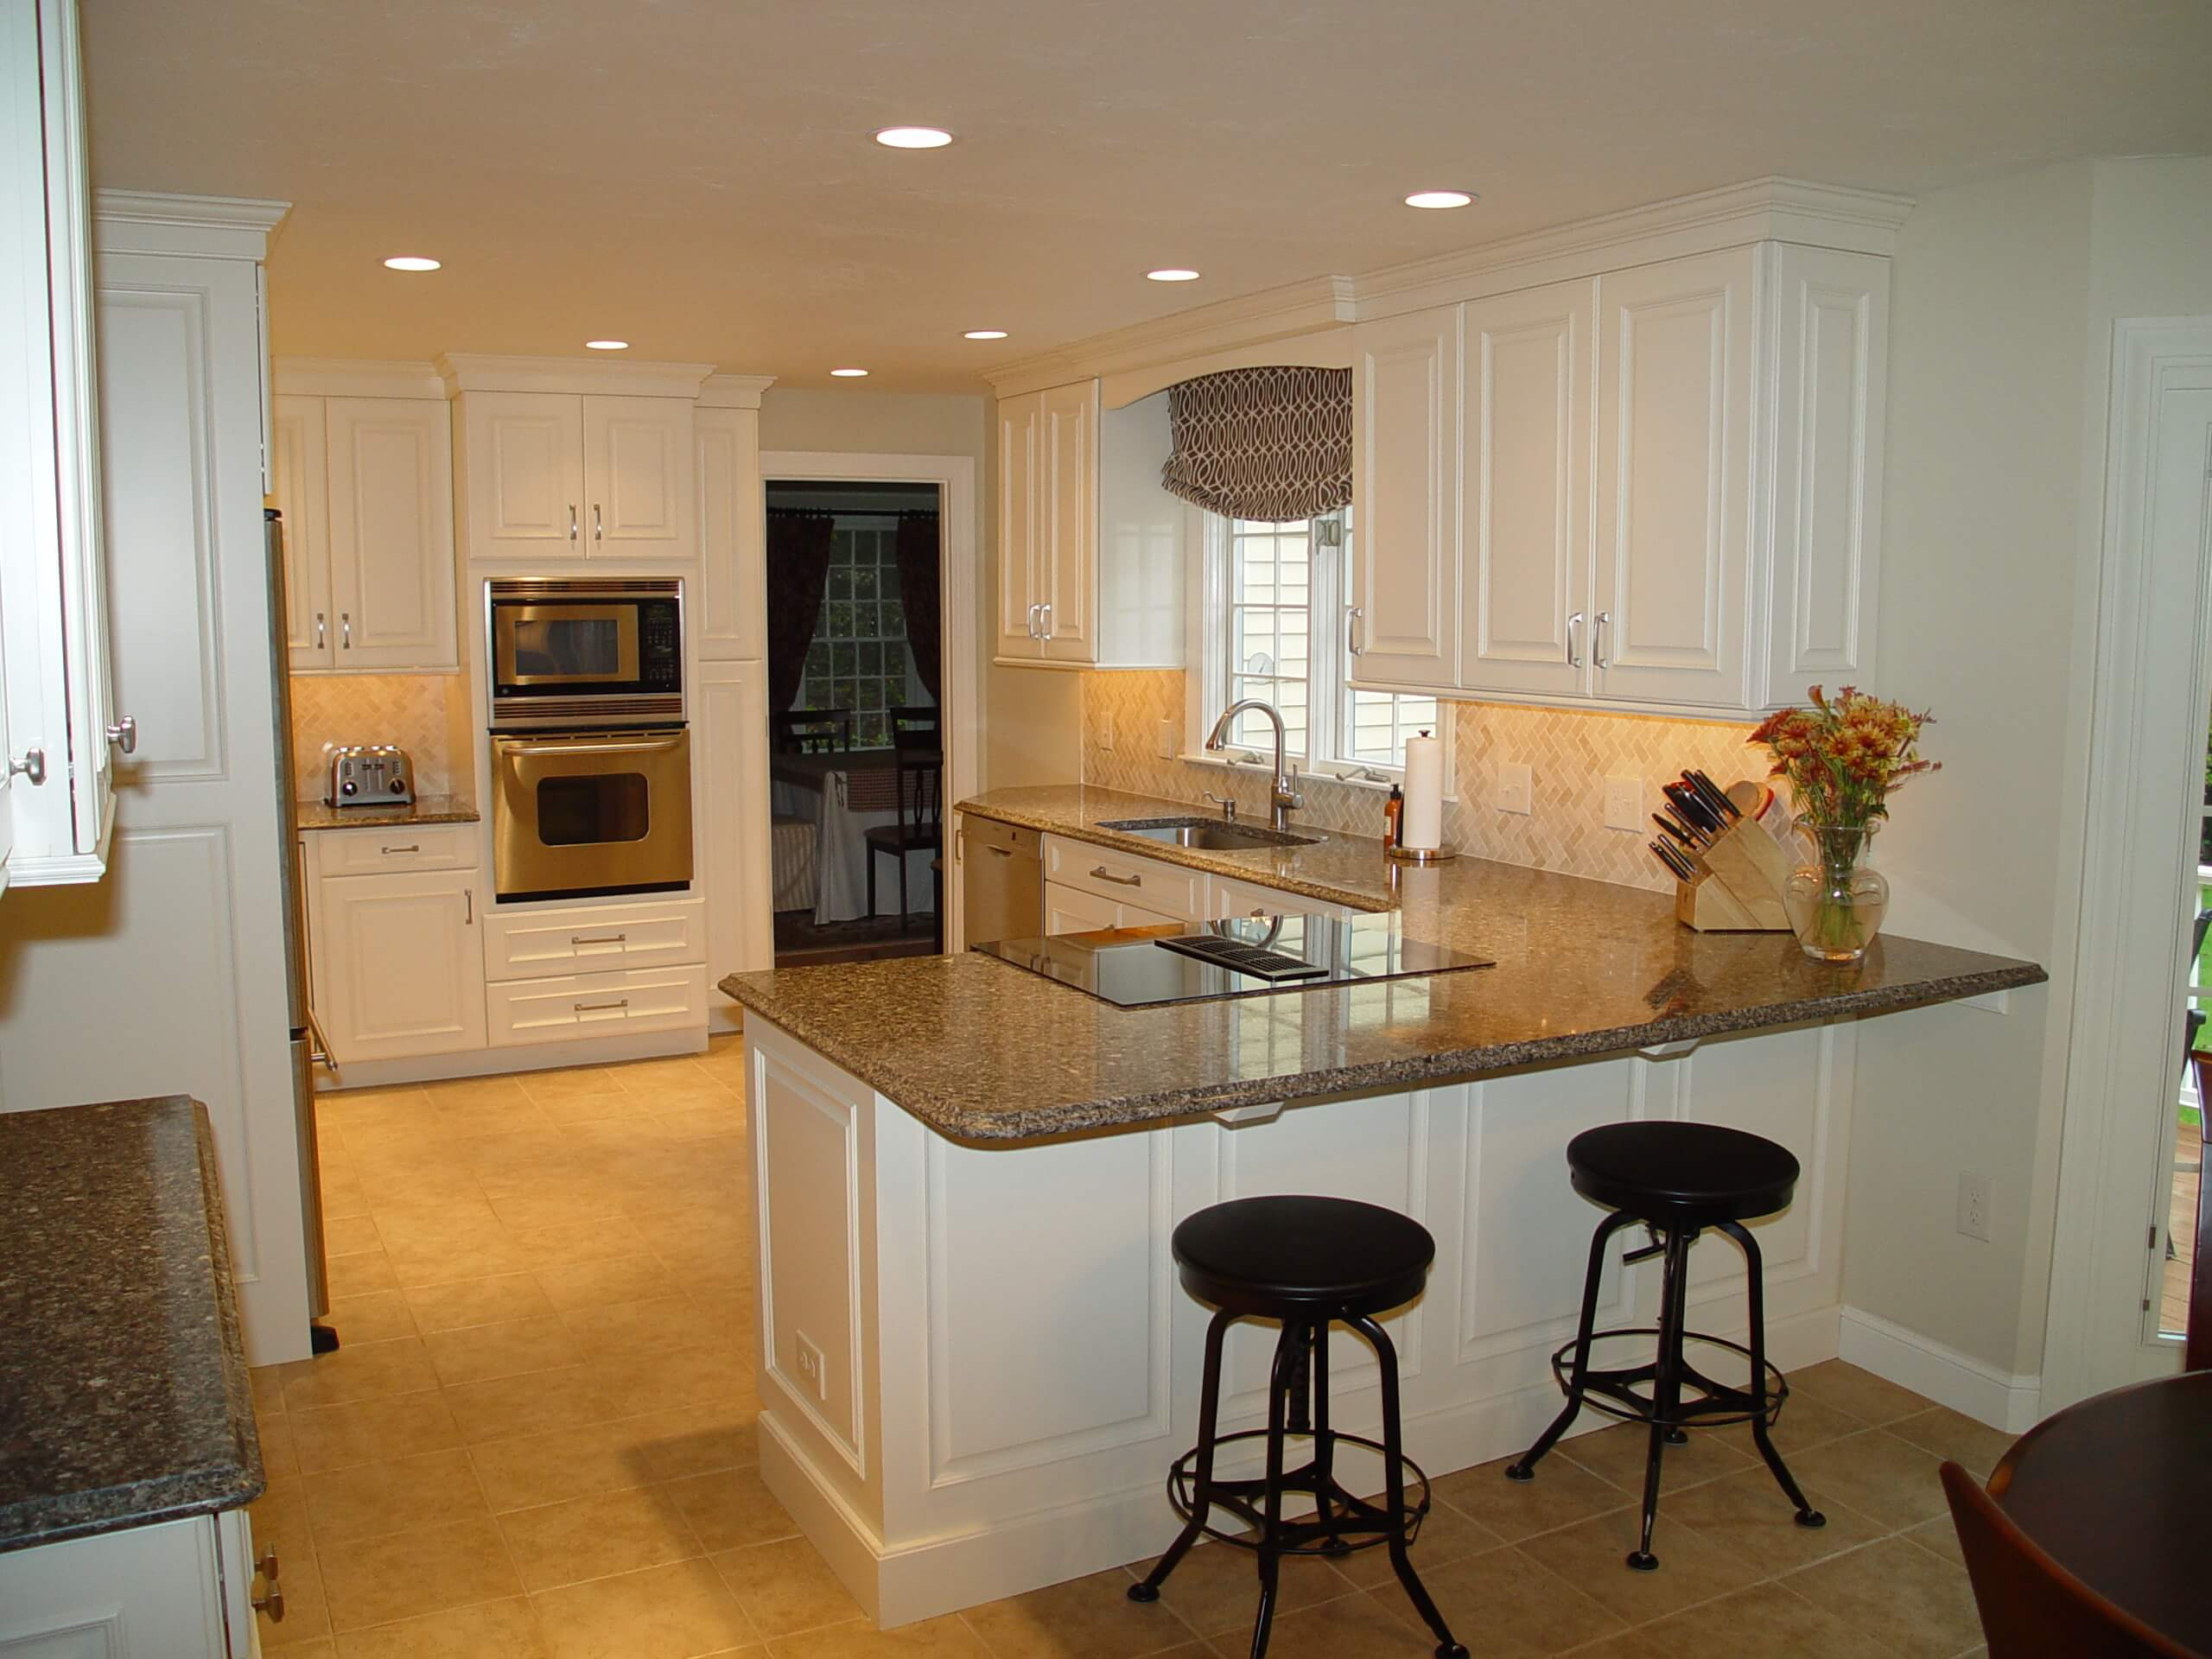 Differences Between Modern Traditional Kitchens The Kitchen Center Of Framingham